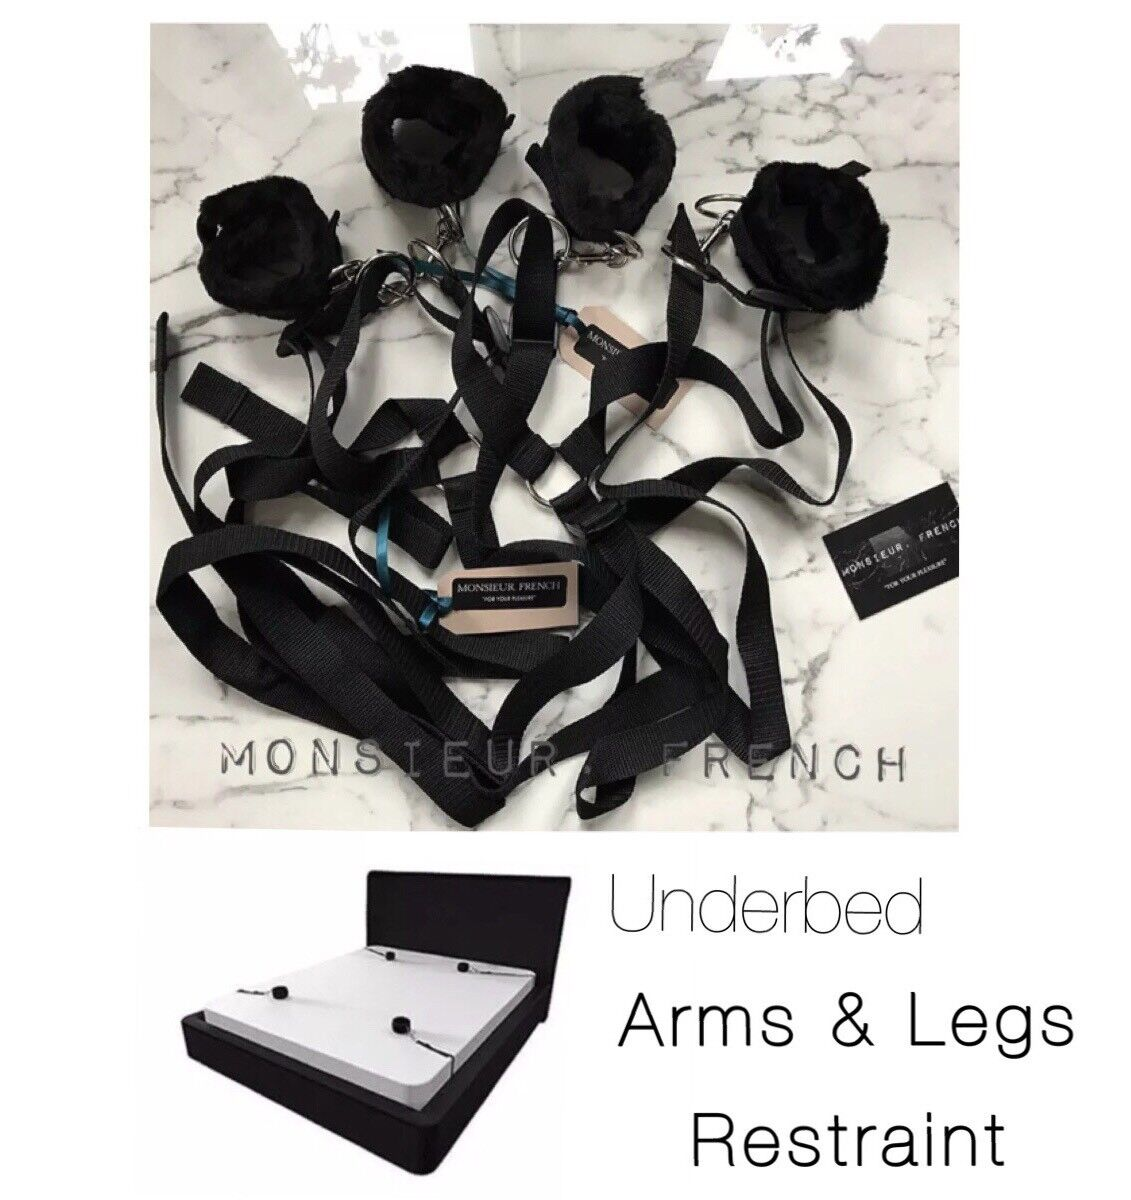 Health & Beauty Health Care Under Bed Arms & Legs Restraint System Handcuffs Bondage British Company .a5